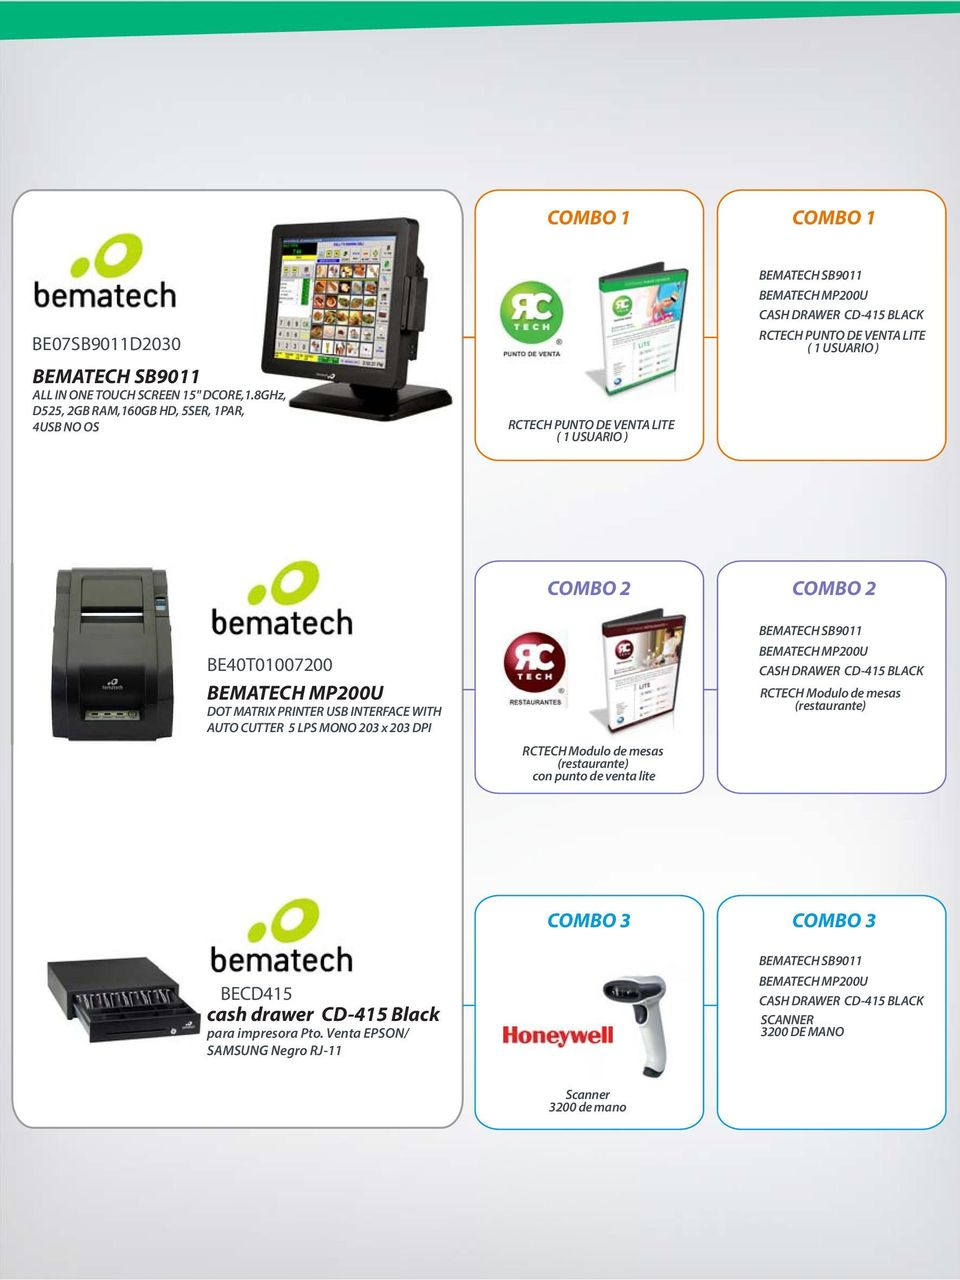 USUARIO ) BE40T01007200 BEMATECH MP200U DOT MATRIX PRINTER USB INTERFACE WITH AUTO CUTTER 5 LPS MONO 203 x 203 DPI COMBO 2 RCTECH Modulo de mesas (restaurante) con punto de venta lite